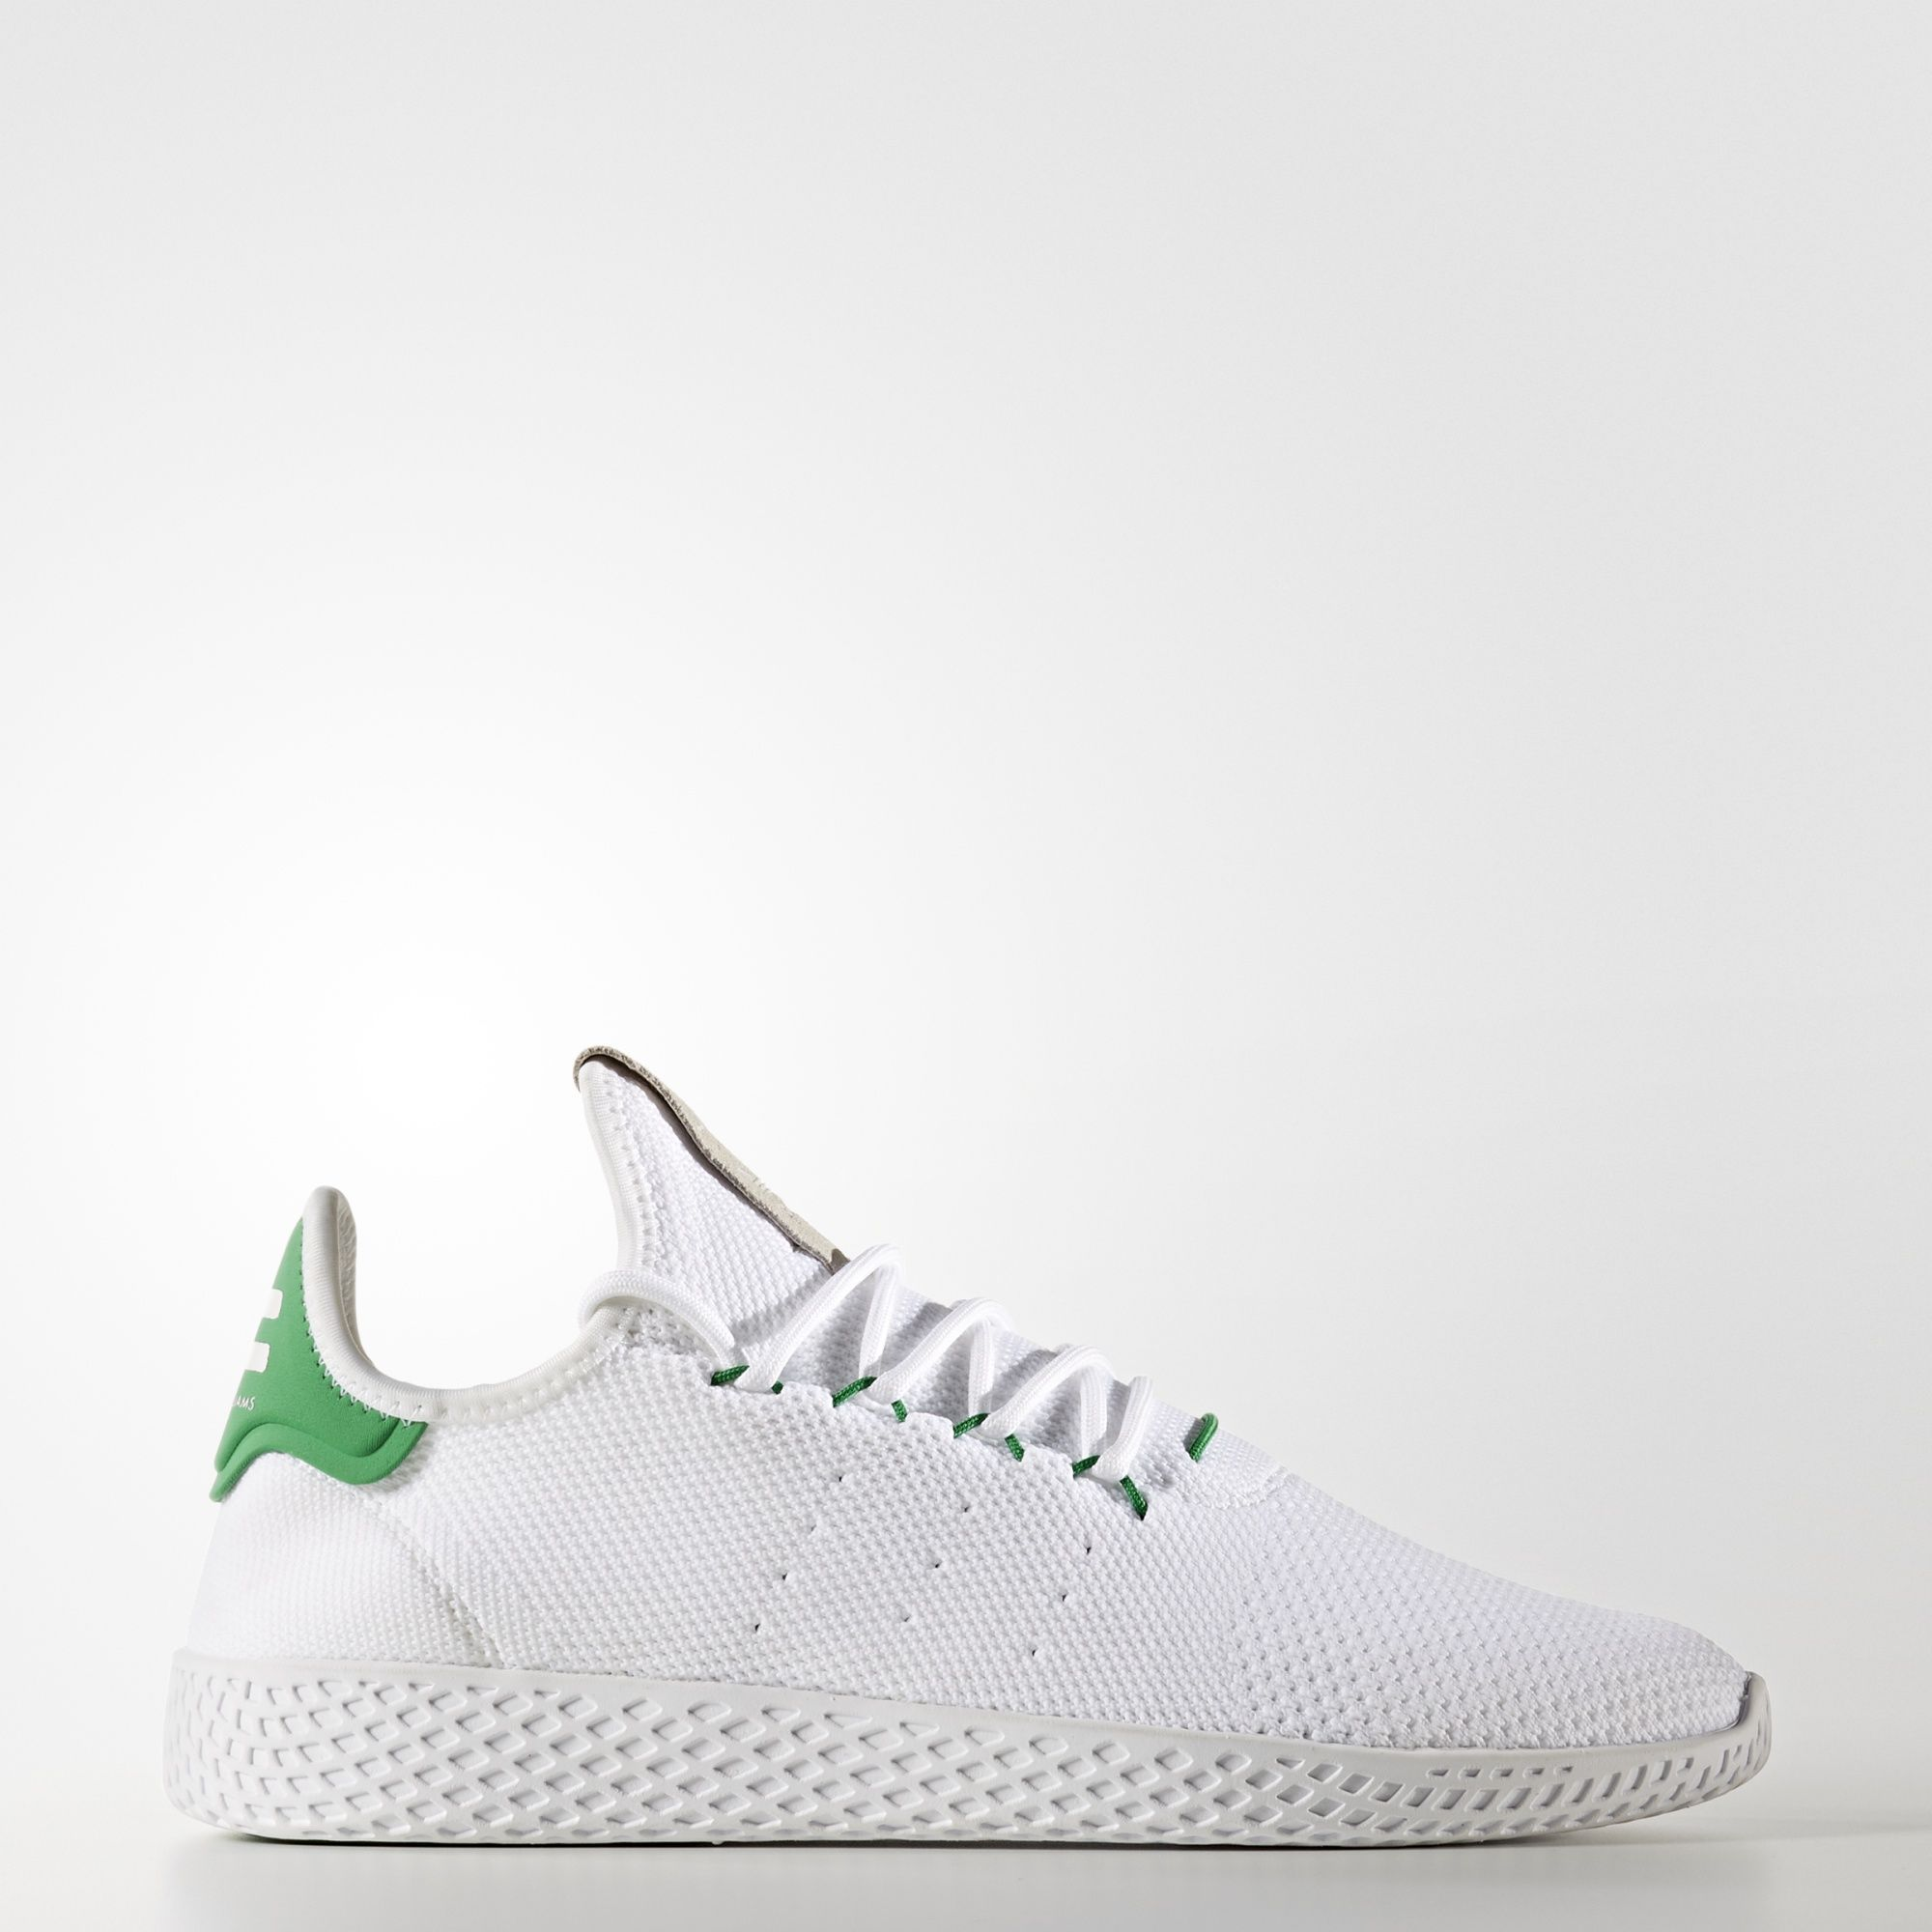 4ba50615b adidas Pharrell Williams Tennis Hu Primeknit Shoes in 2019 ...